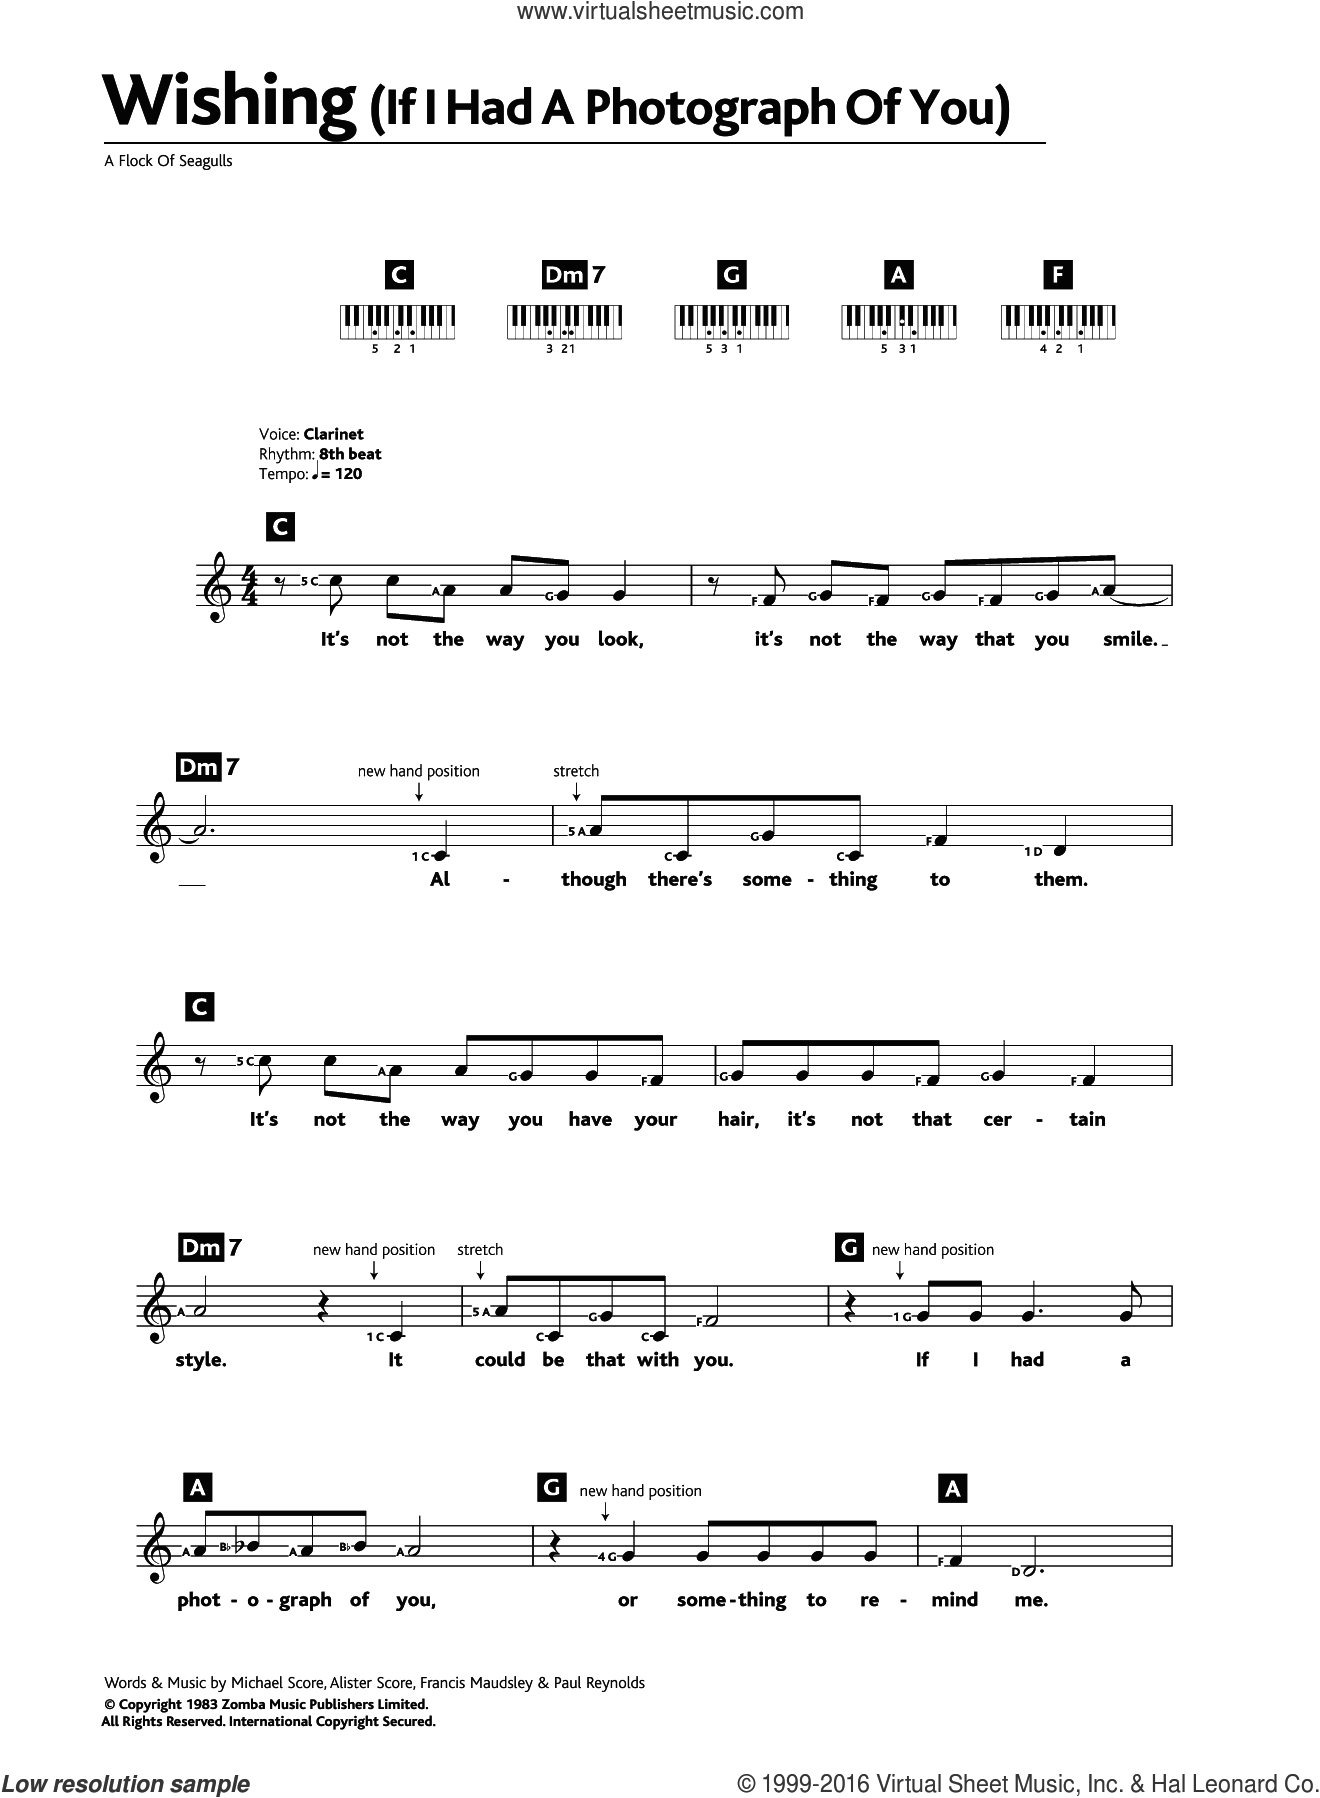 Wishing (If I Had A Photograph Of You) sheet music for piano solo (chords, lyrics, melody) by A Flock Of Seagulls, Alister Score, Francis Maudsley, Michael Score and Paul Reynolds, intermediate piano (chords, lyrics, melody)